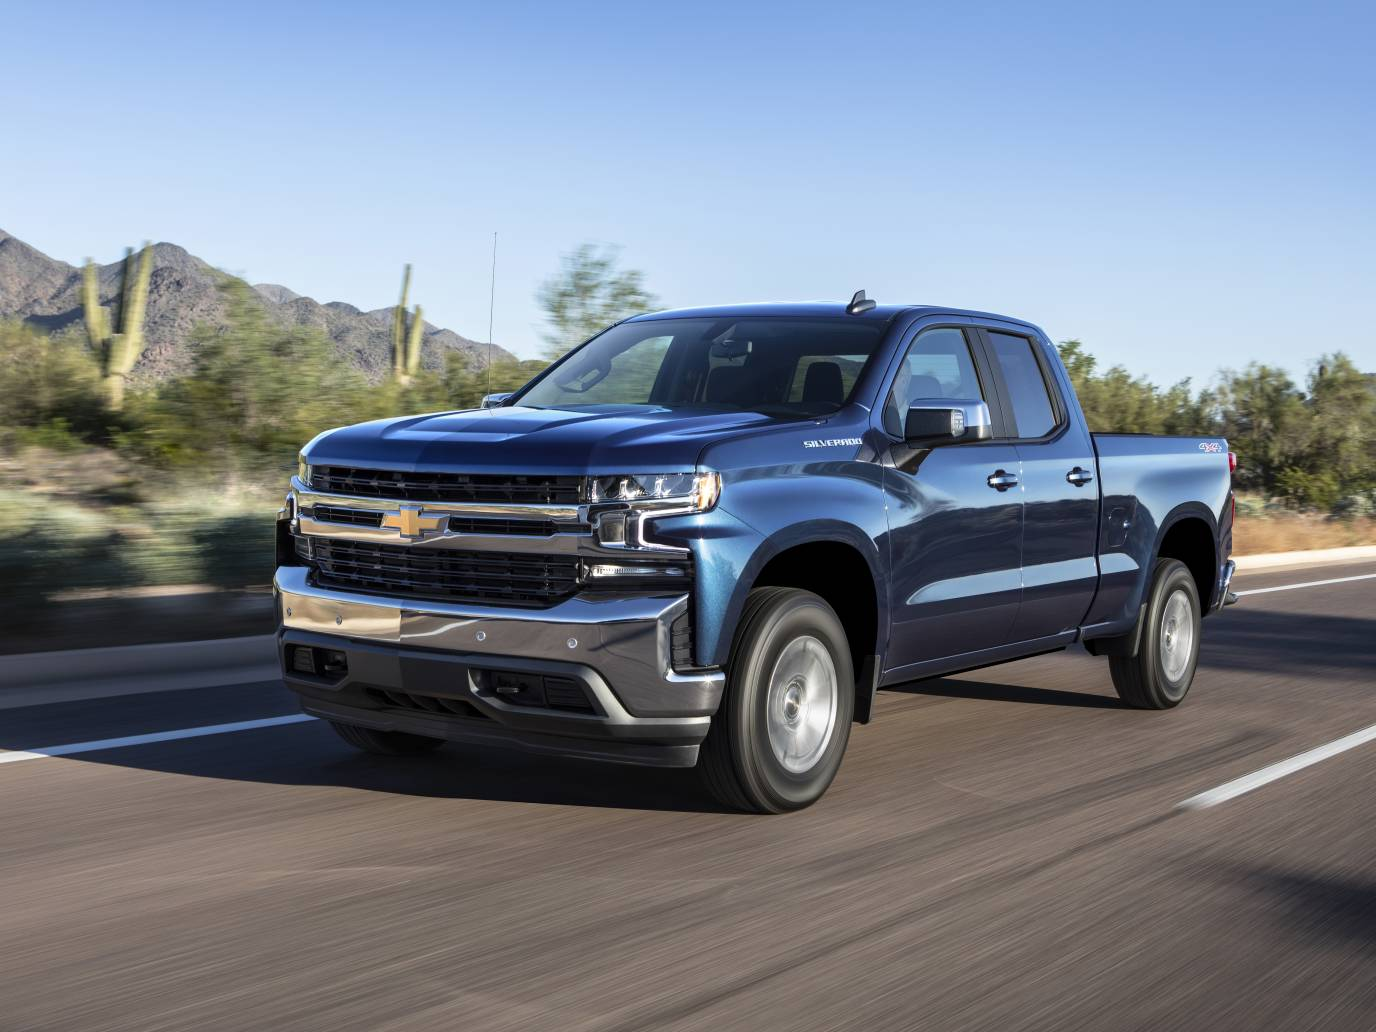 Small Engine, Big Truck: 2019 Silverado 4-Cylinder Turbo Review | GearJunkie